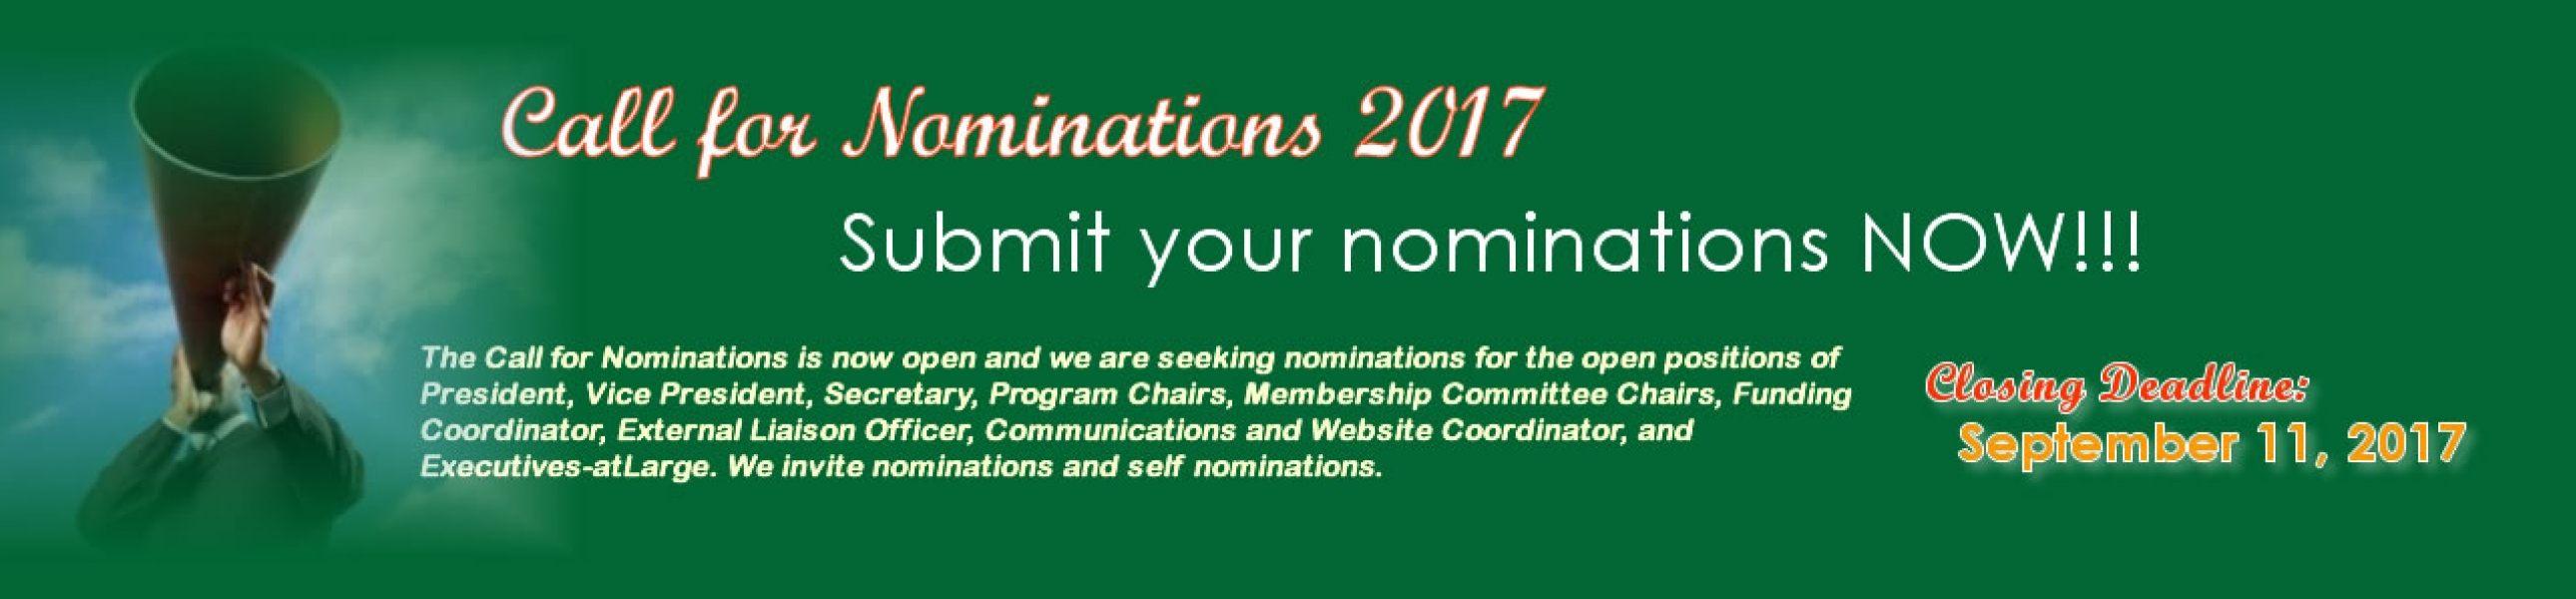 Call for Nominations 2017